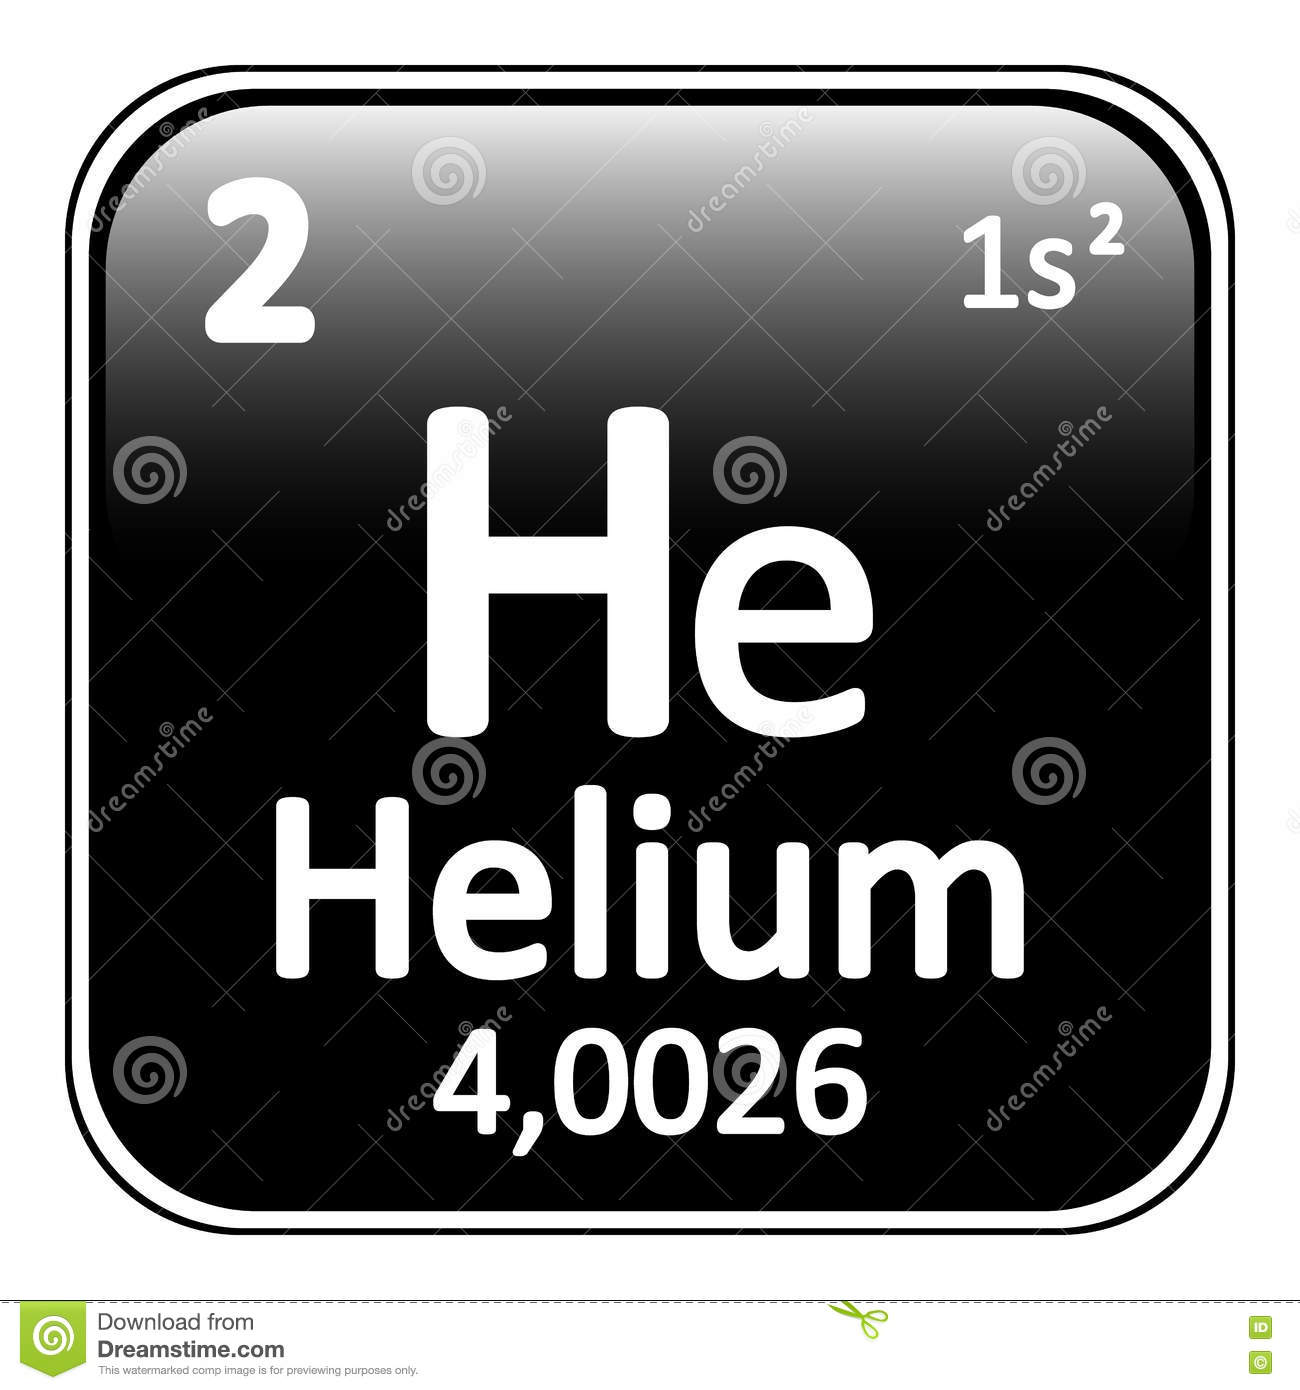 Periodic table element helium icon stock illustration image royalty free illustration download periodic table element helium gamestrikefo Images